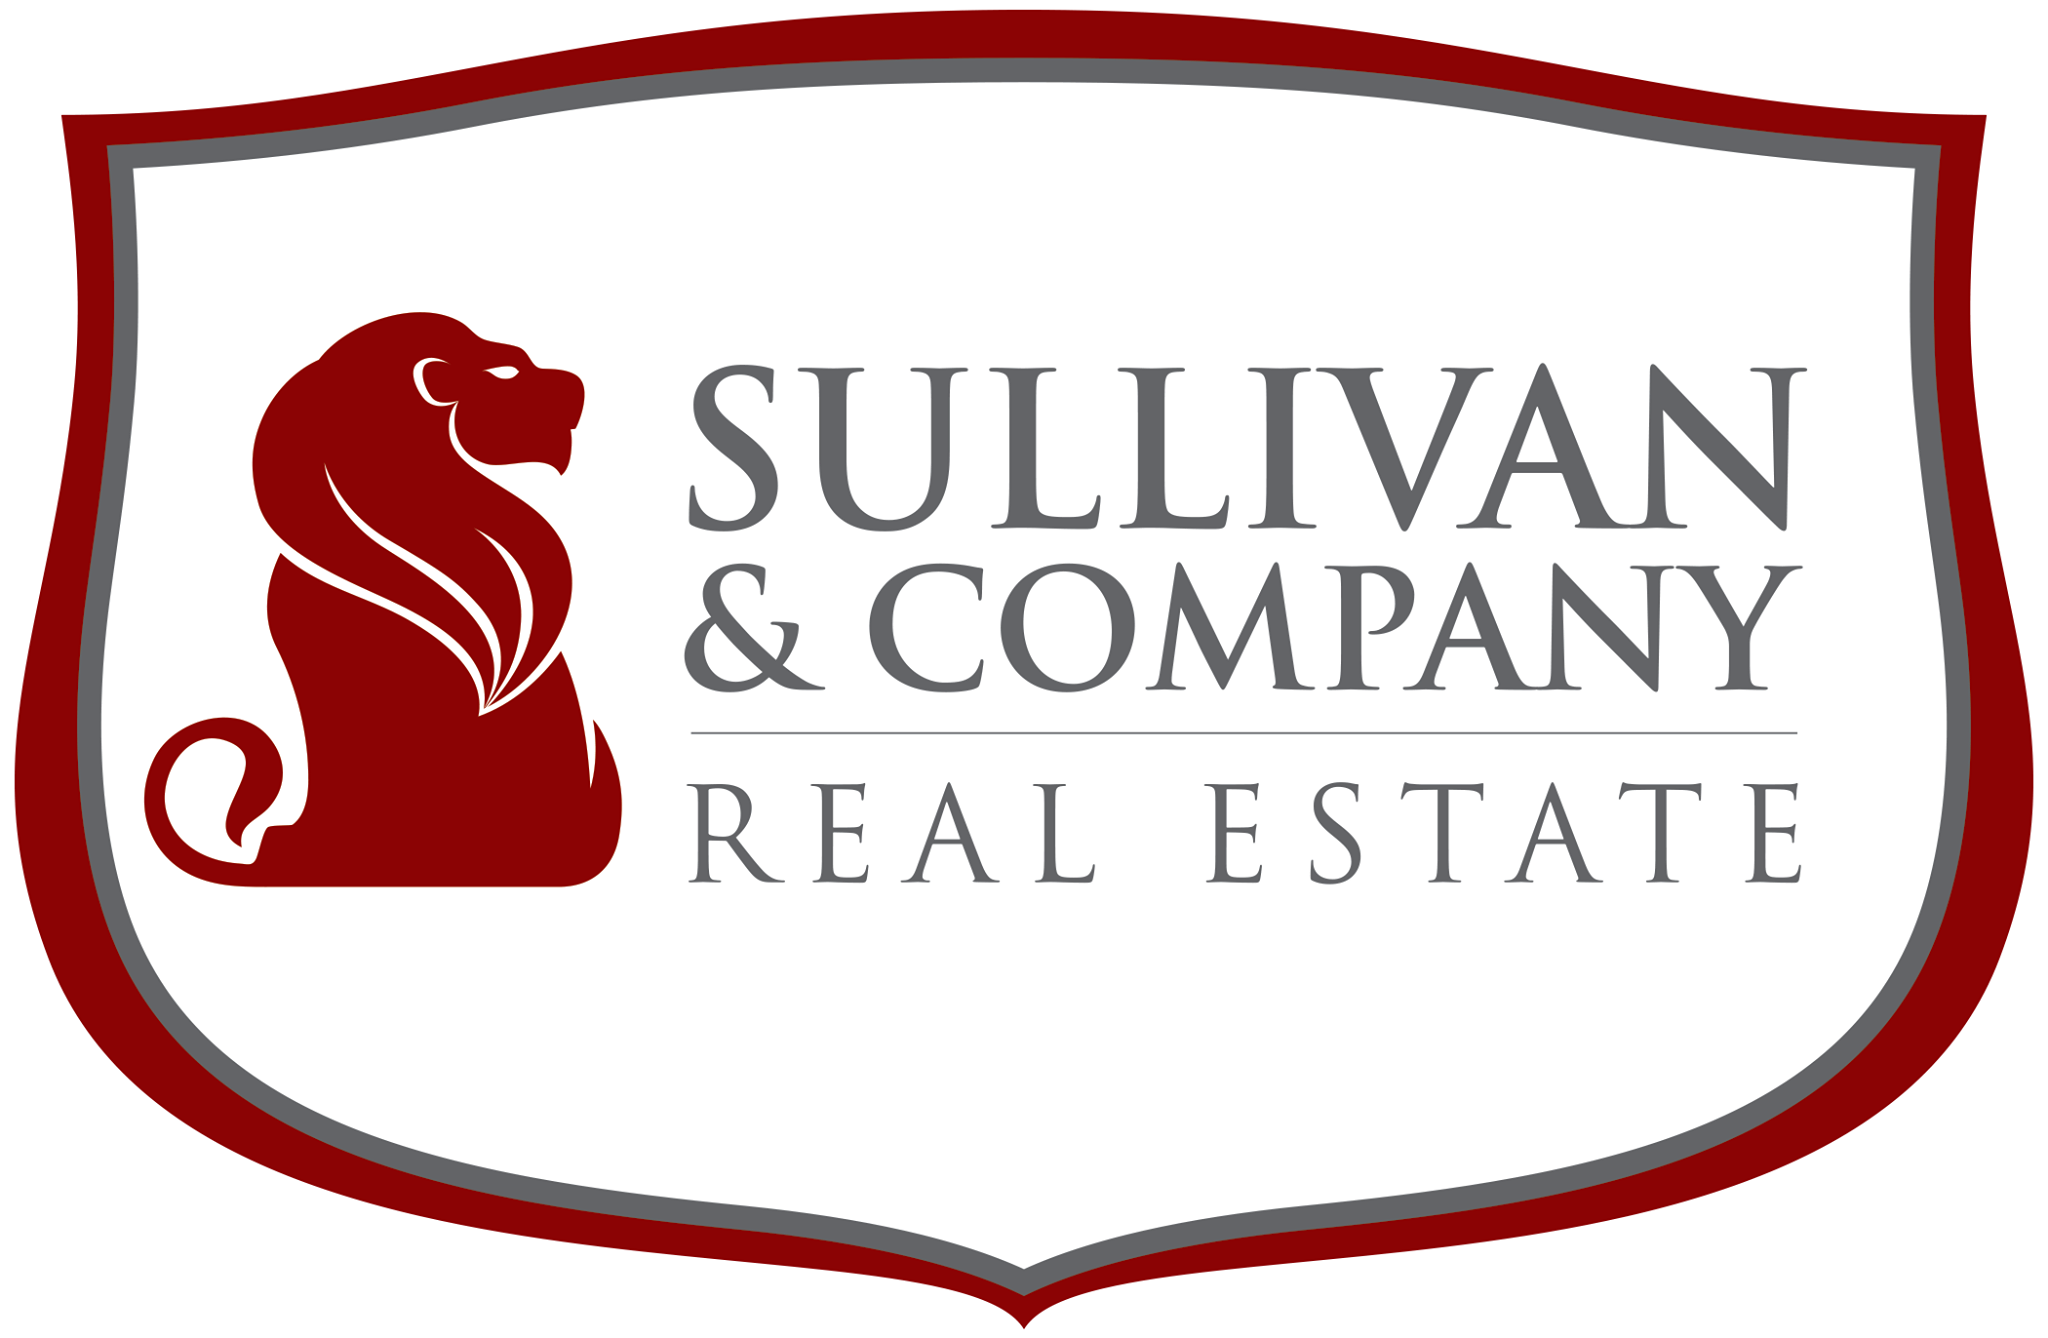 Sullivan & Company Real Estate, Inc.